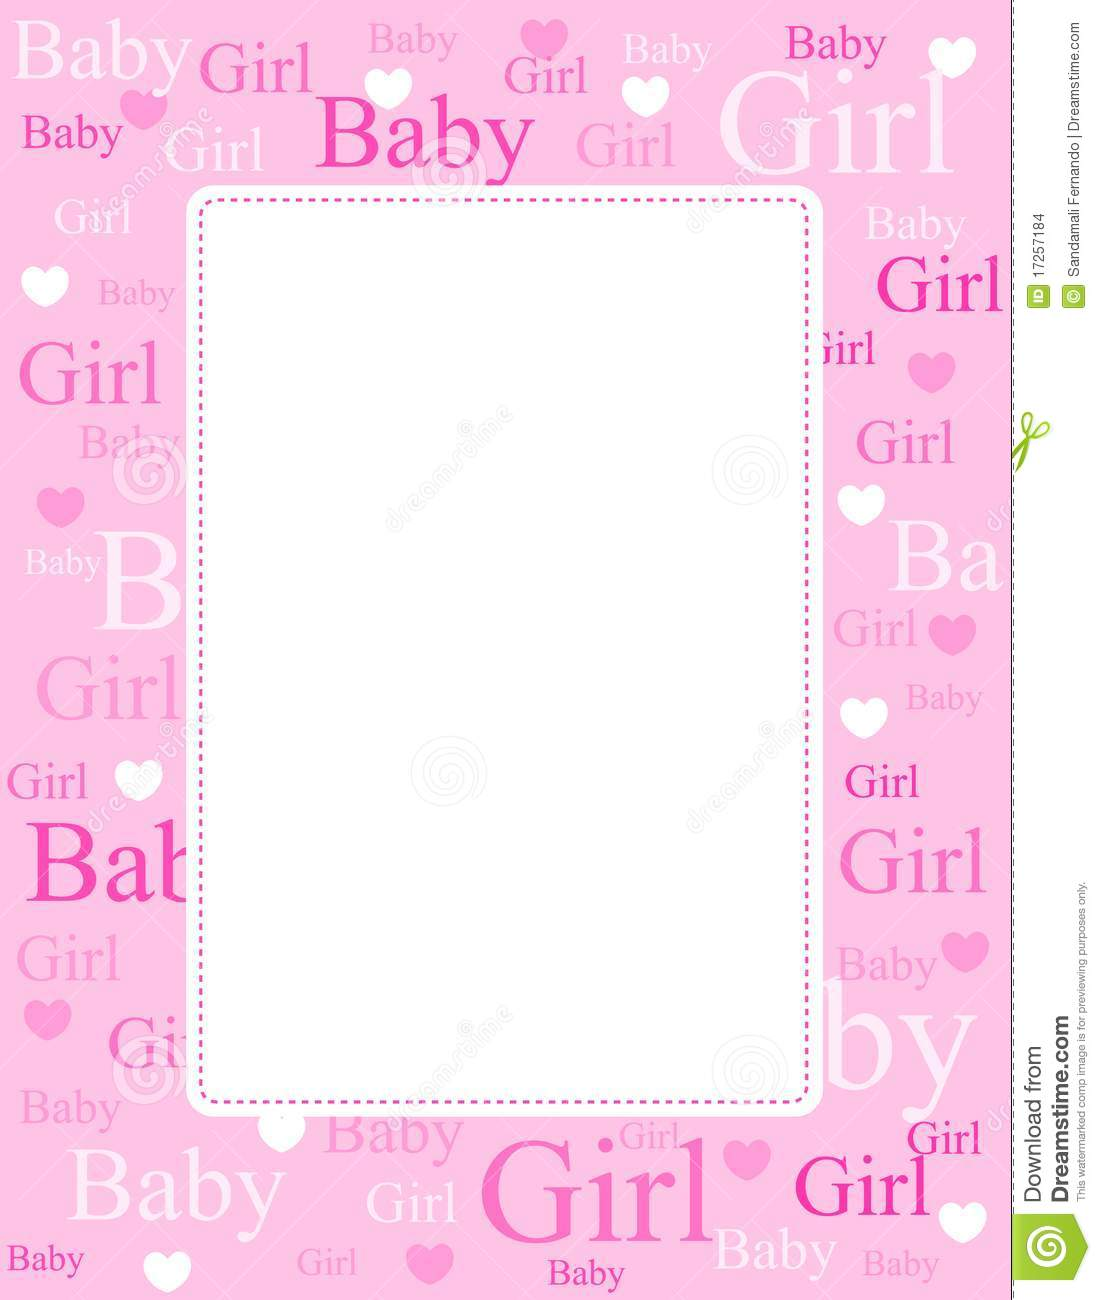 Baby girl clipart border jpg royalty free library Baby Girl Borders Clipart - Clipart Kid jpg royalty free library